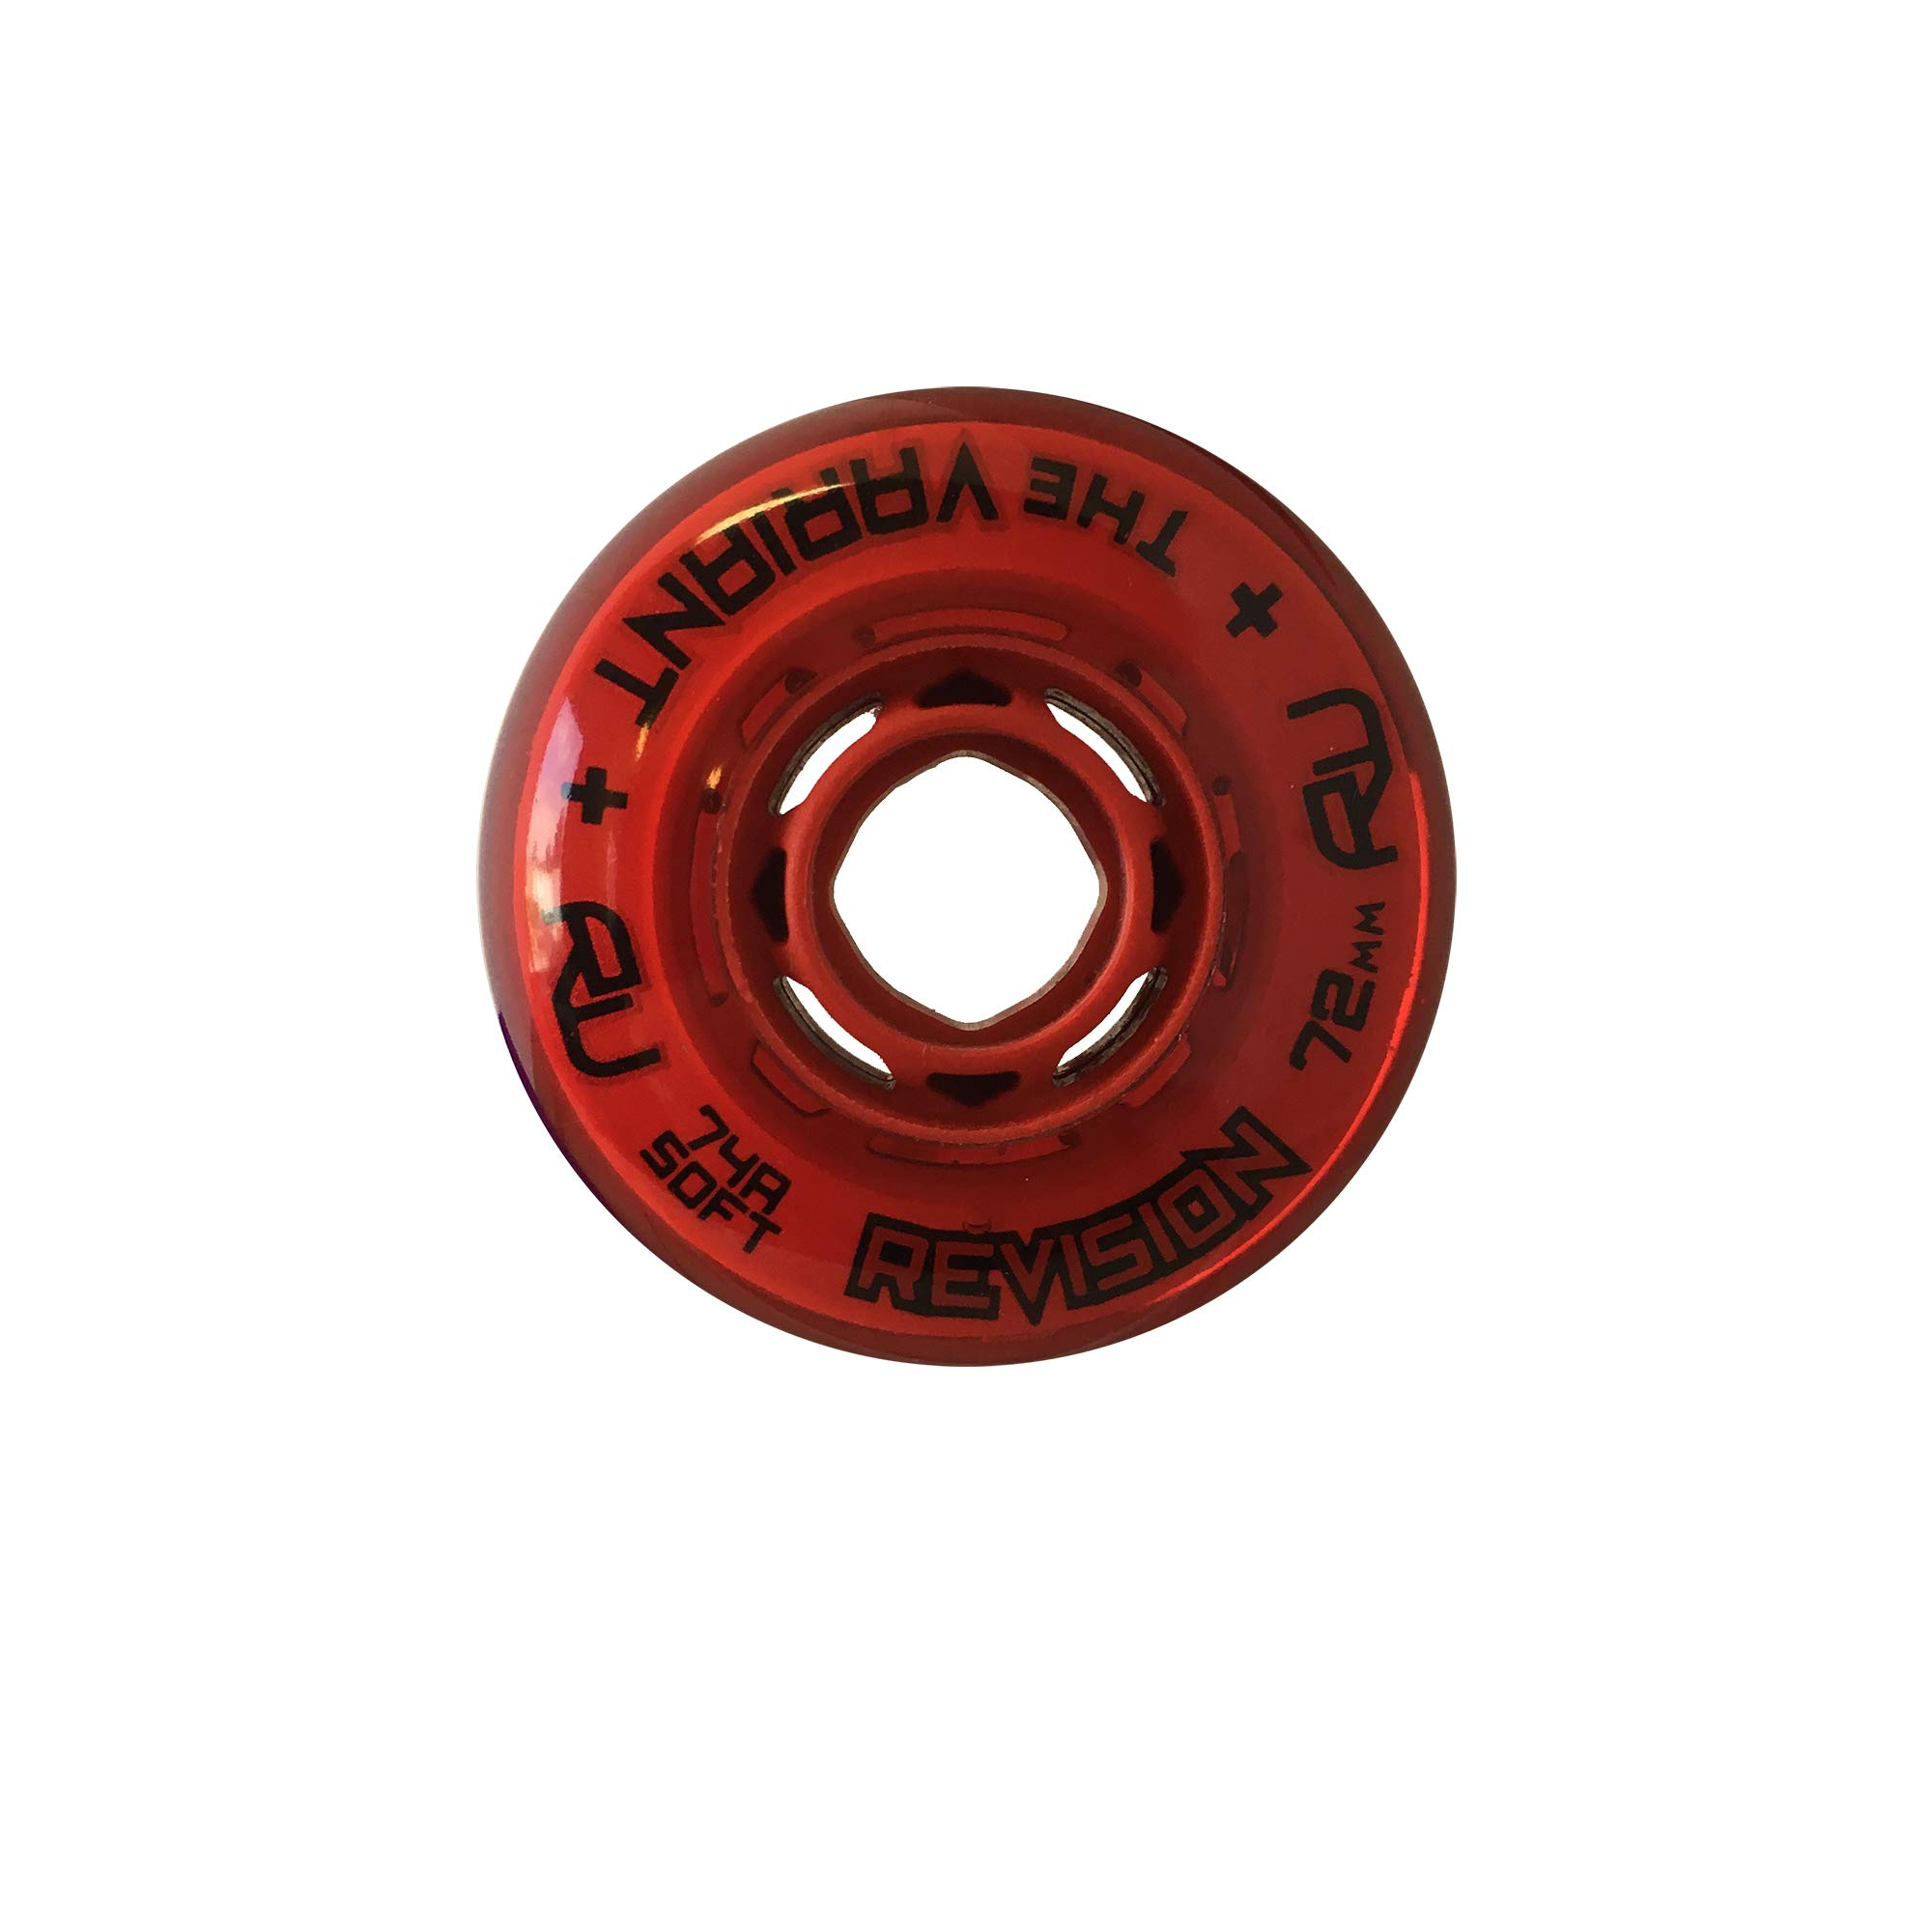 Revision Variant Indoor Inline Roller Hockey Wheel - 74A - 72mm Soft - Red by Revision Hockey